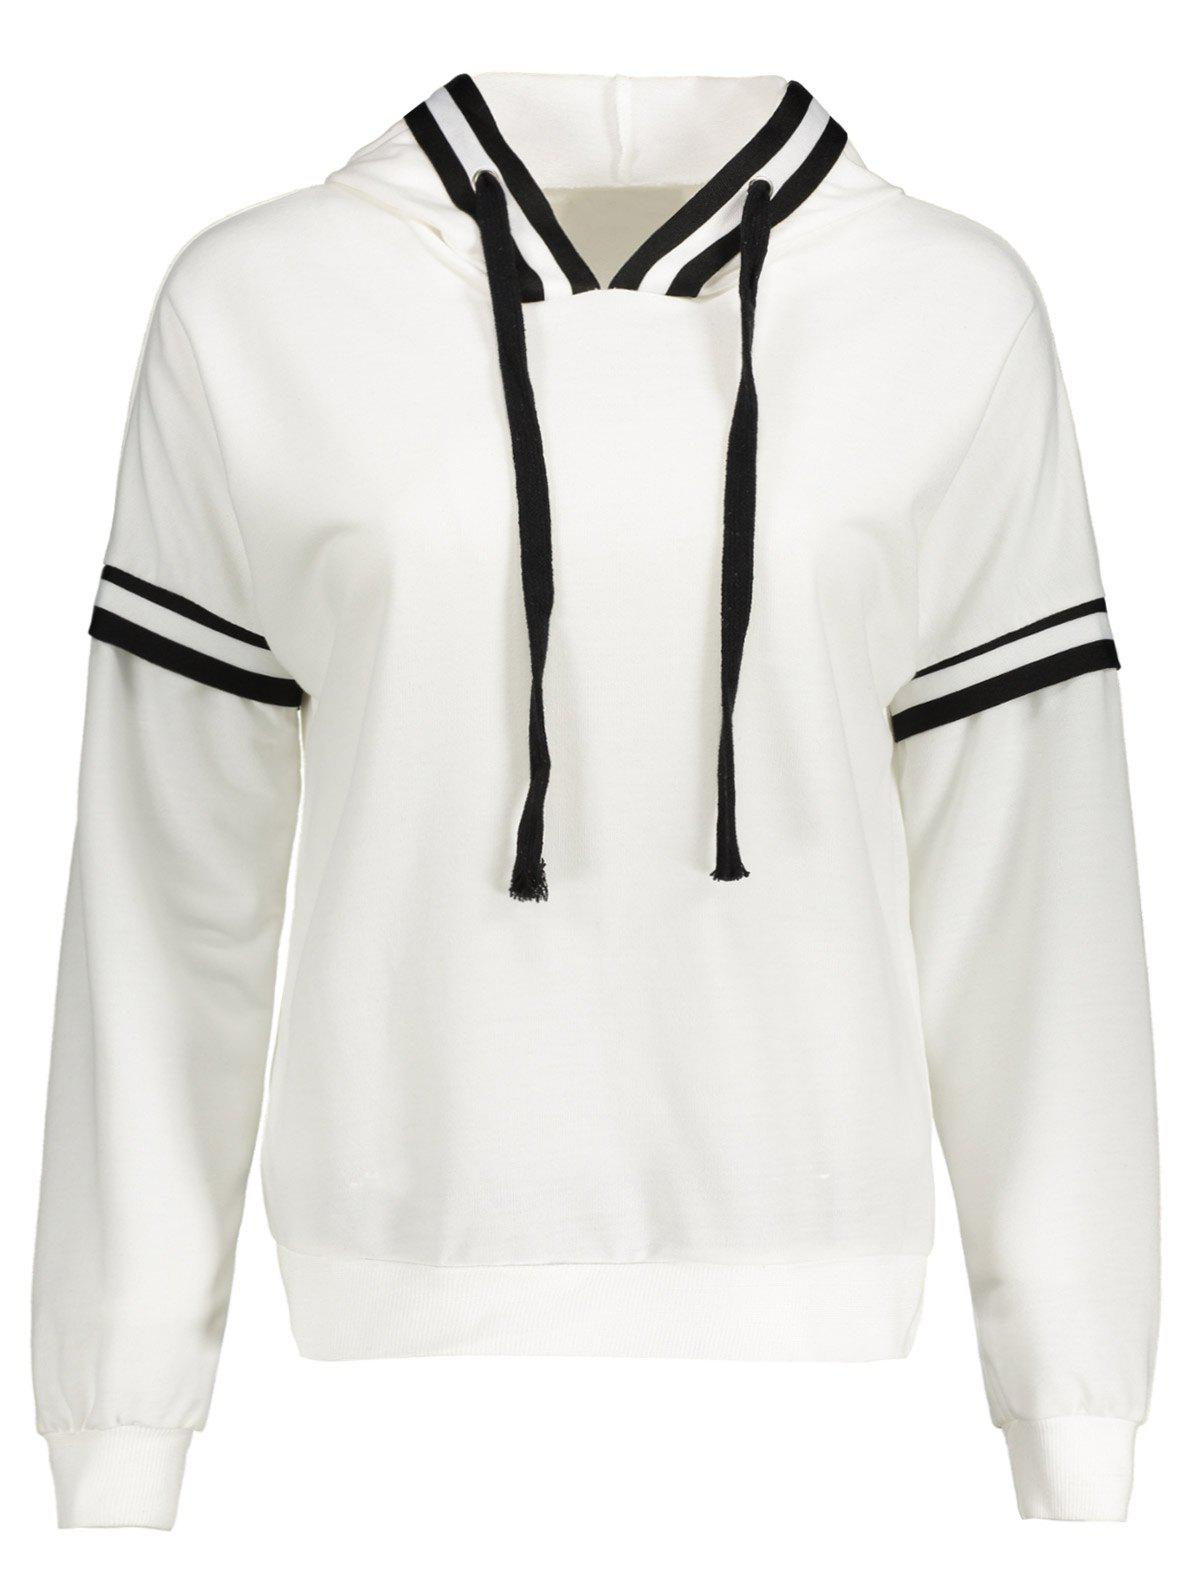 Plus Size Drawstring Insert HoodieWomen<br><br><br>Size: 2XL<br>Color: WHITE